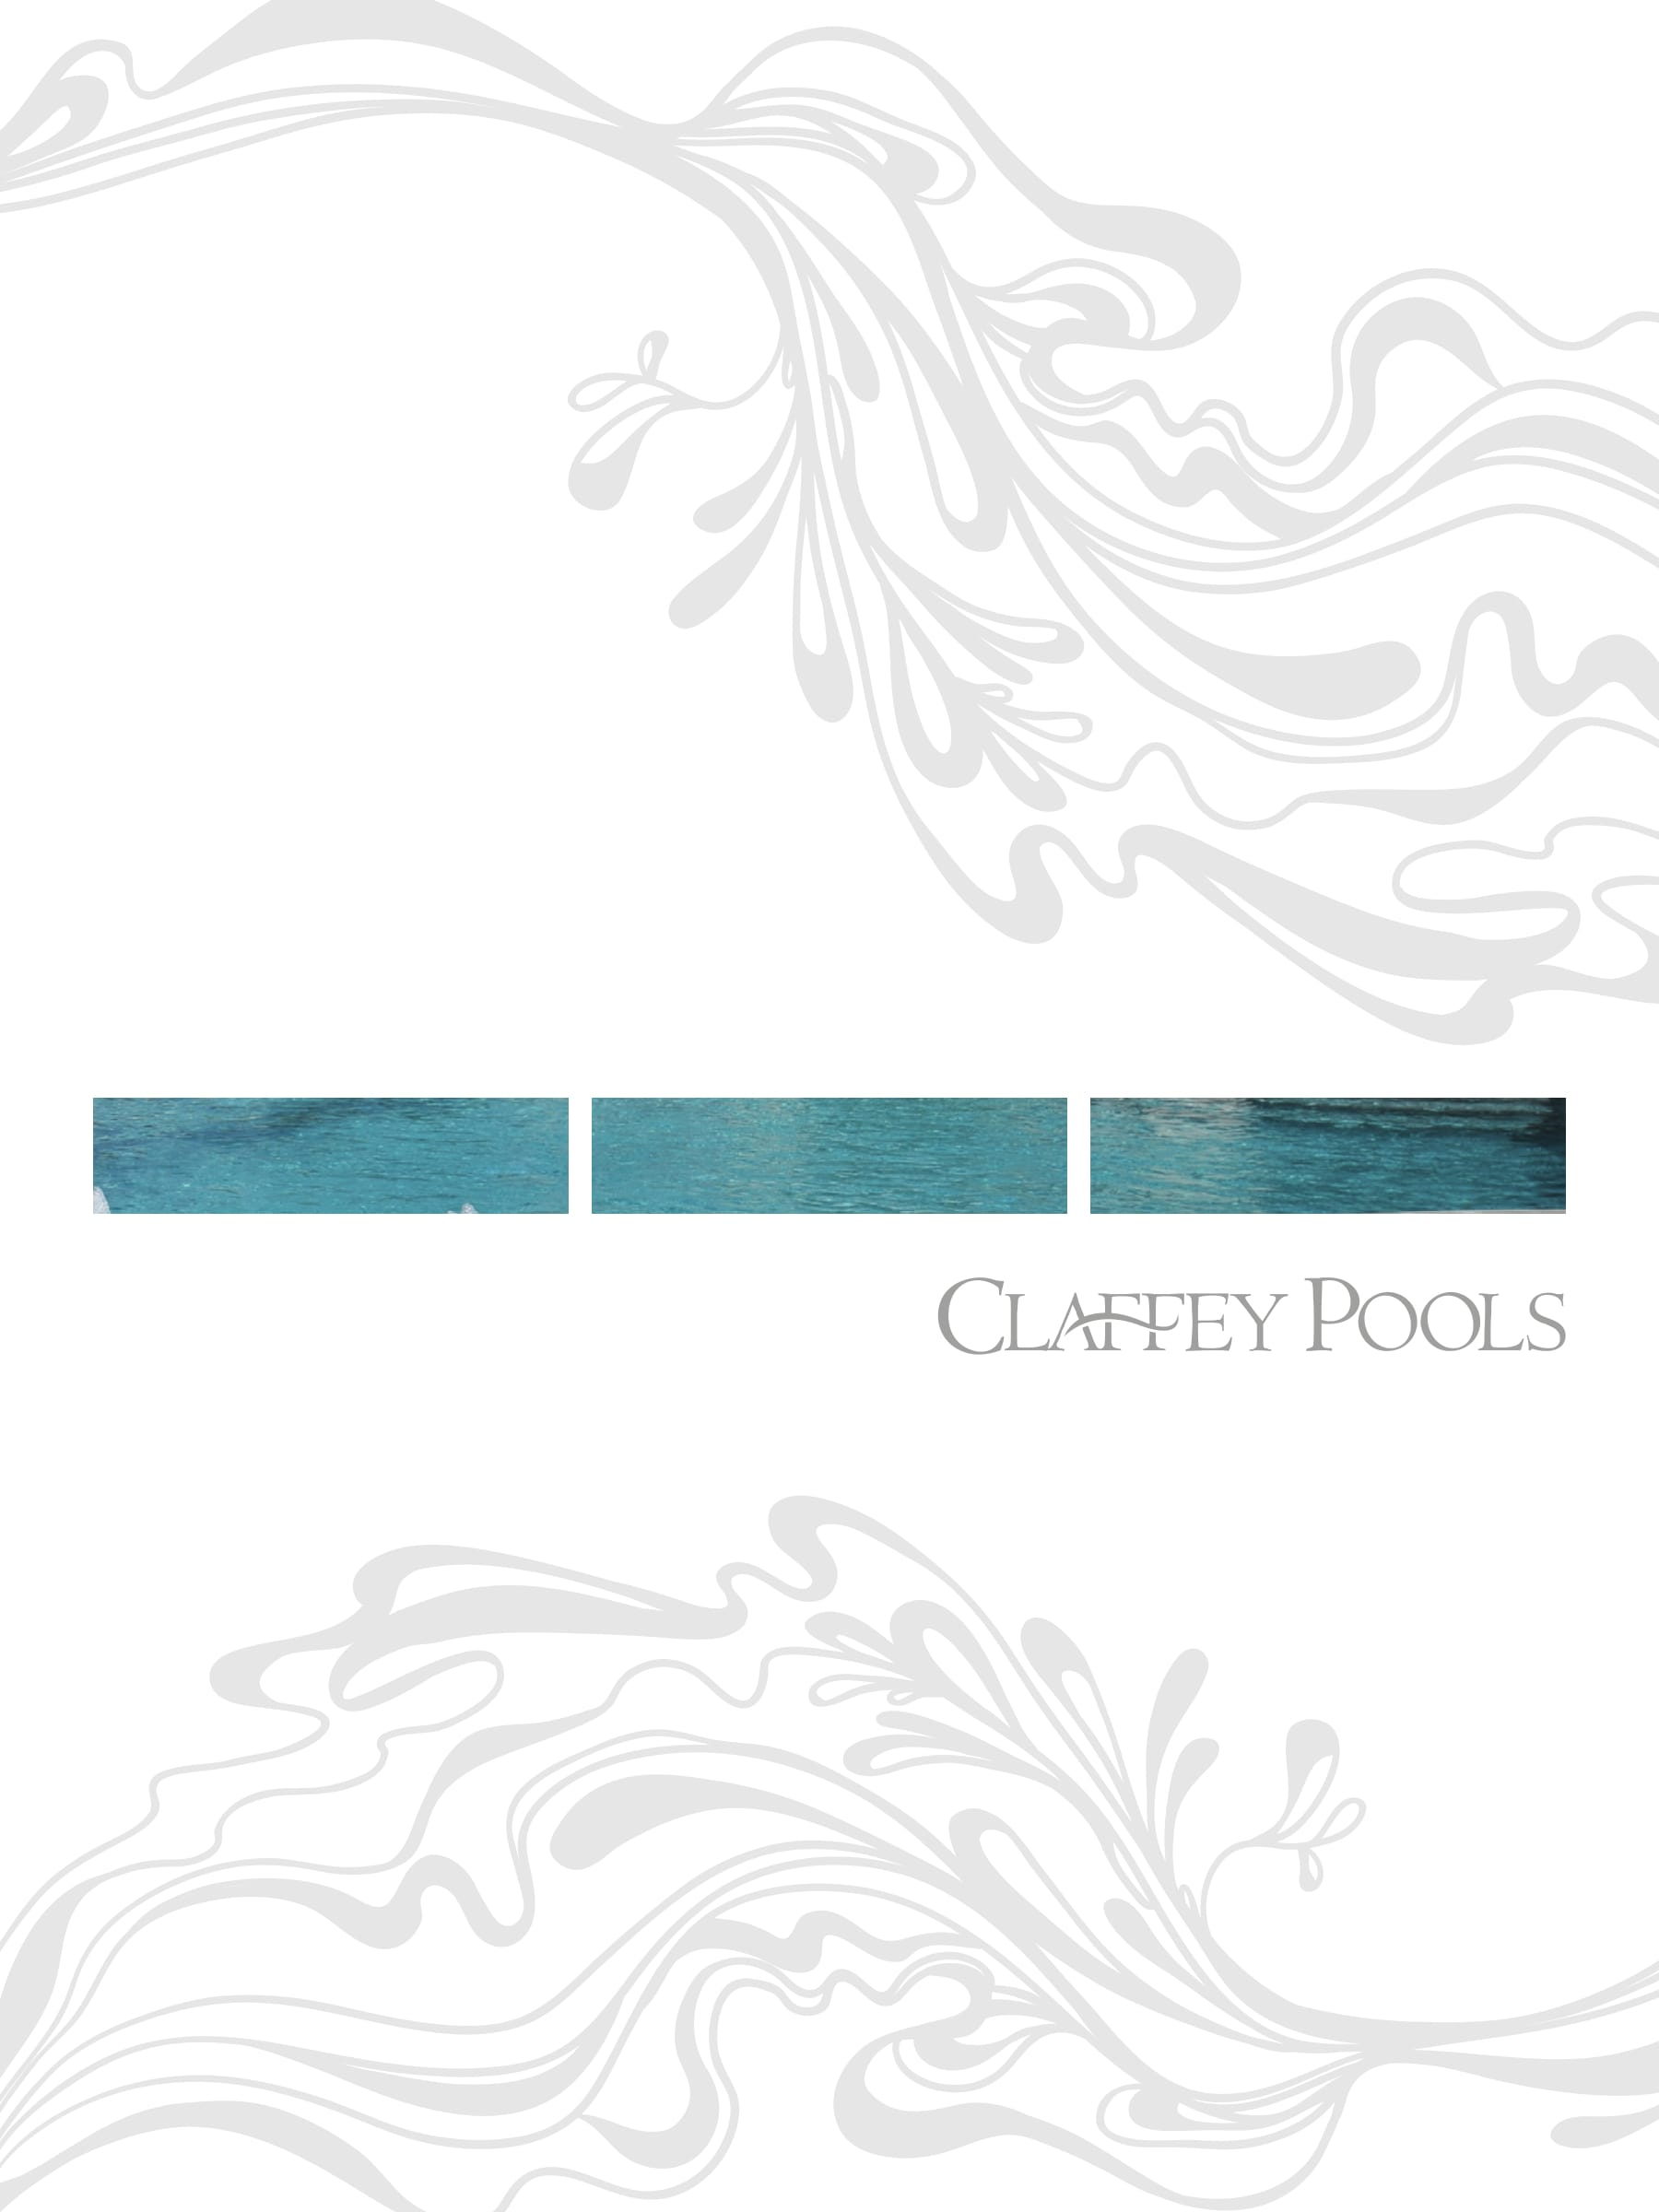 2016 - Claffey Pools constructed their 8,000th pool.